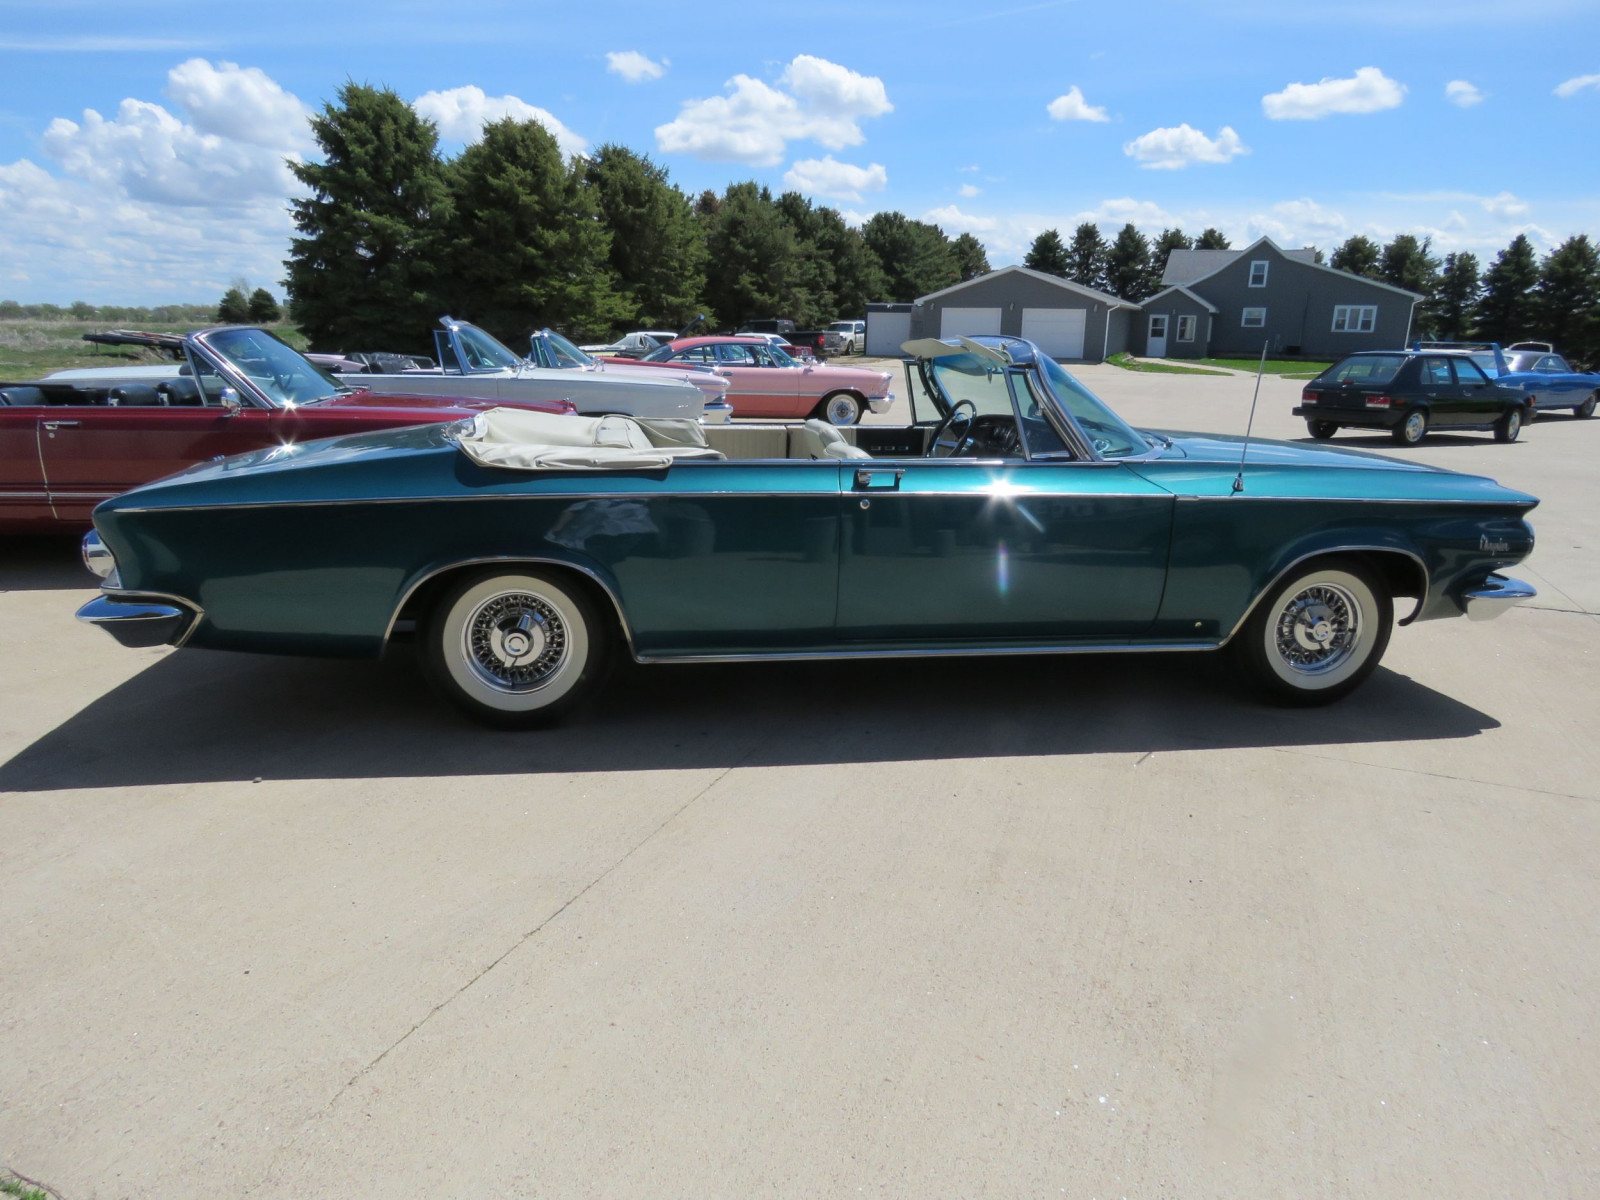 RARE 1963 Chrysler 300 Pace Setter Convertible Indy 500 Pace car - Image 5